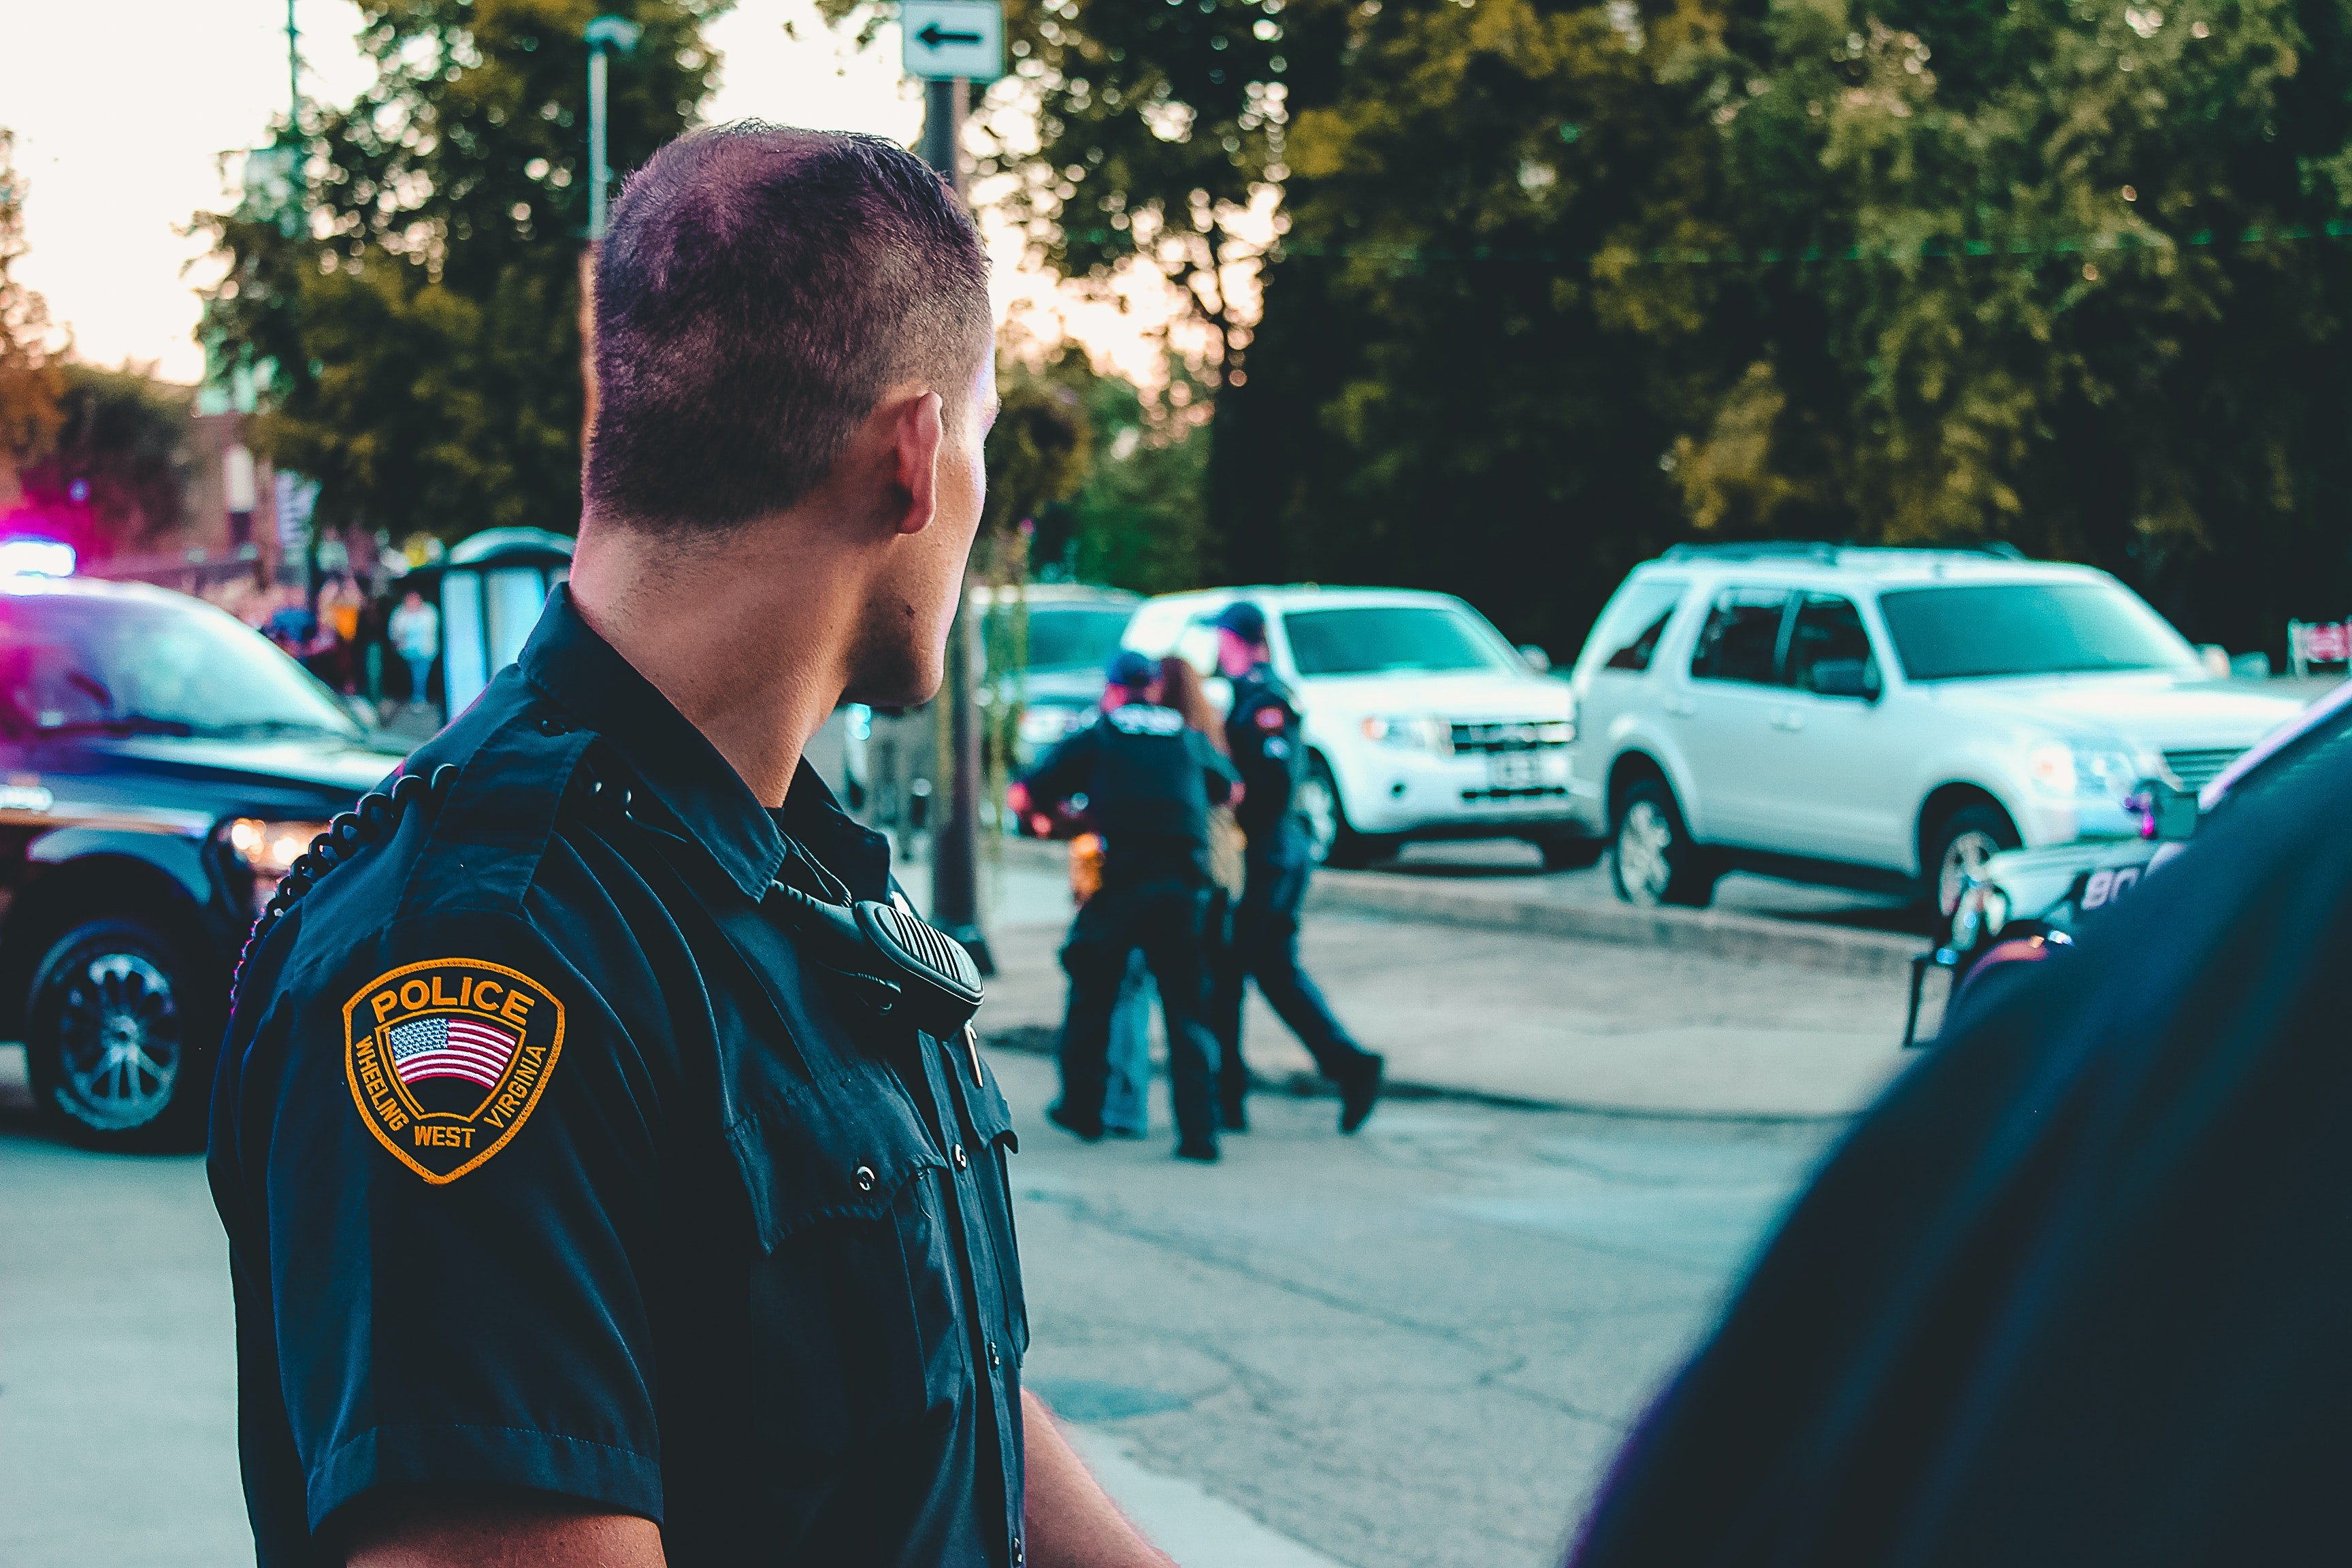 A police officer looks on as action unfolds in the street before him | Photo: Pexels/Rosemary Ketchum